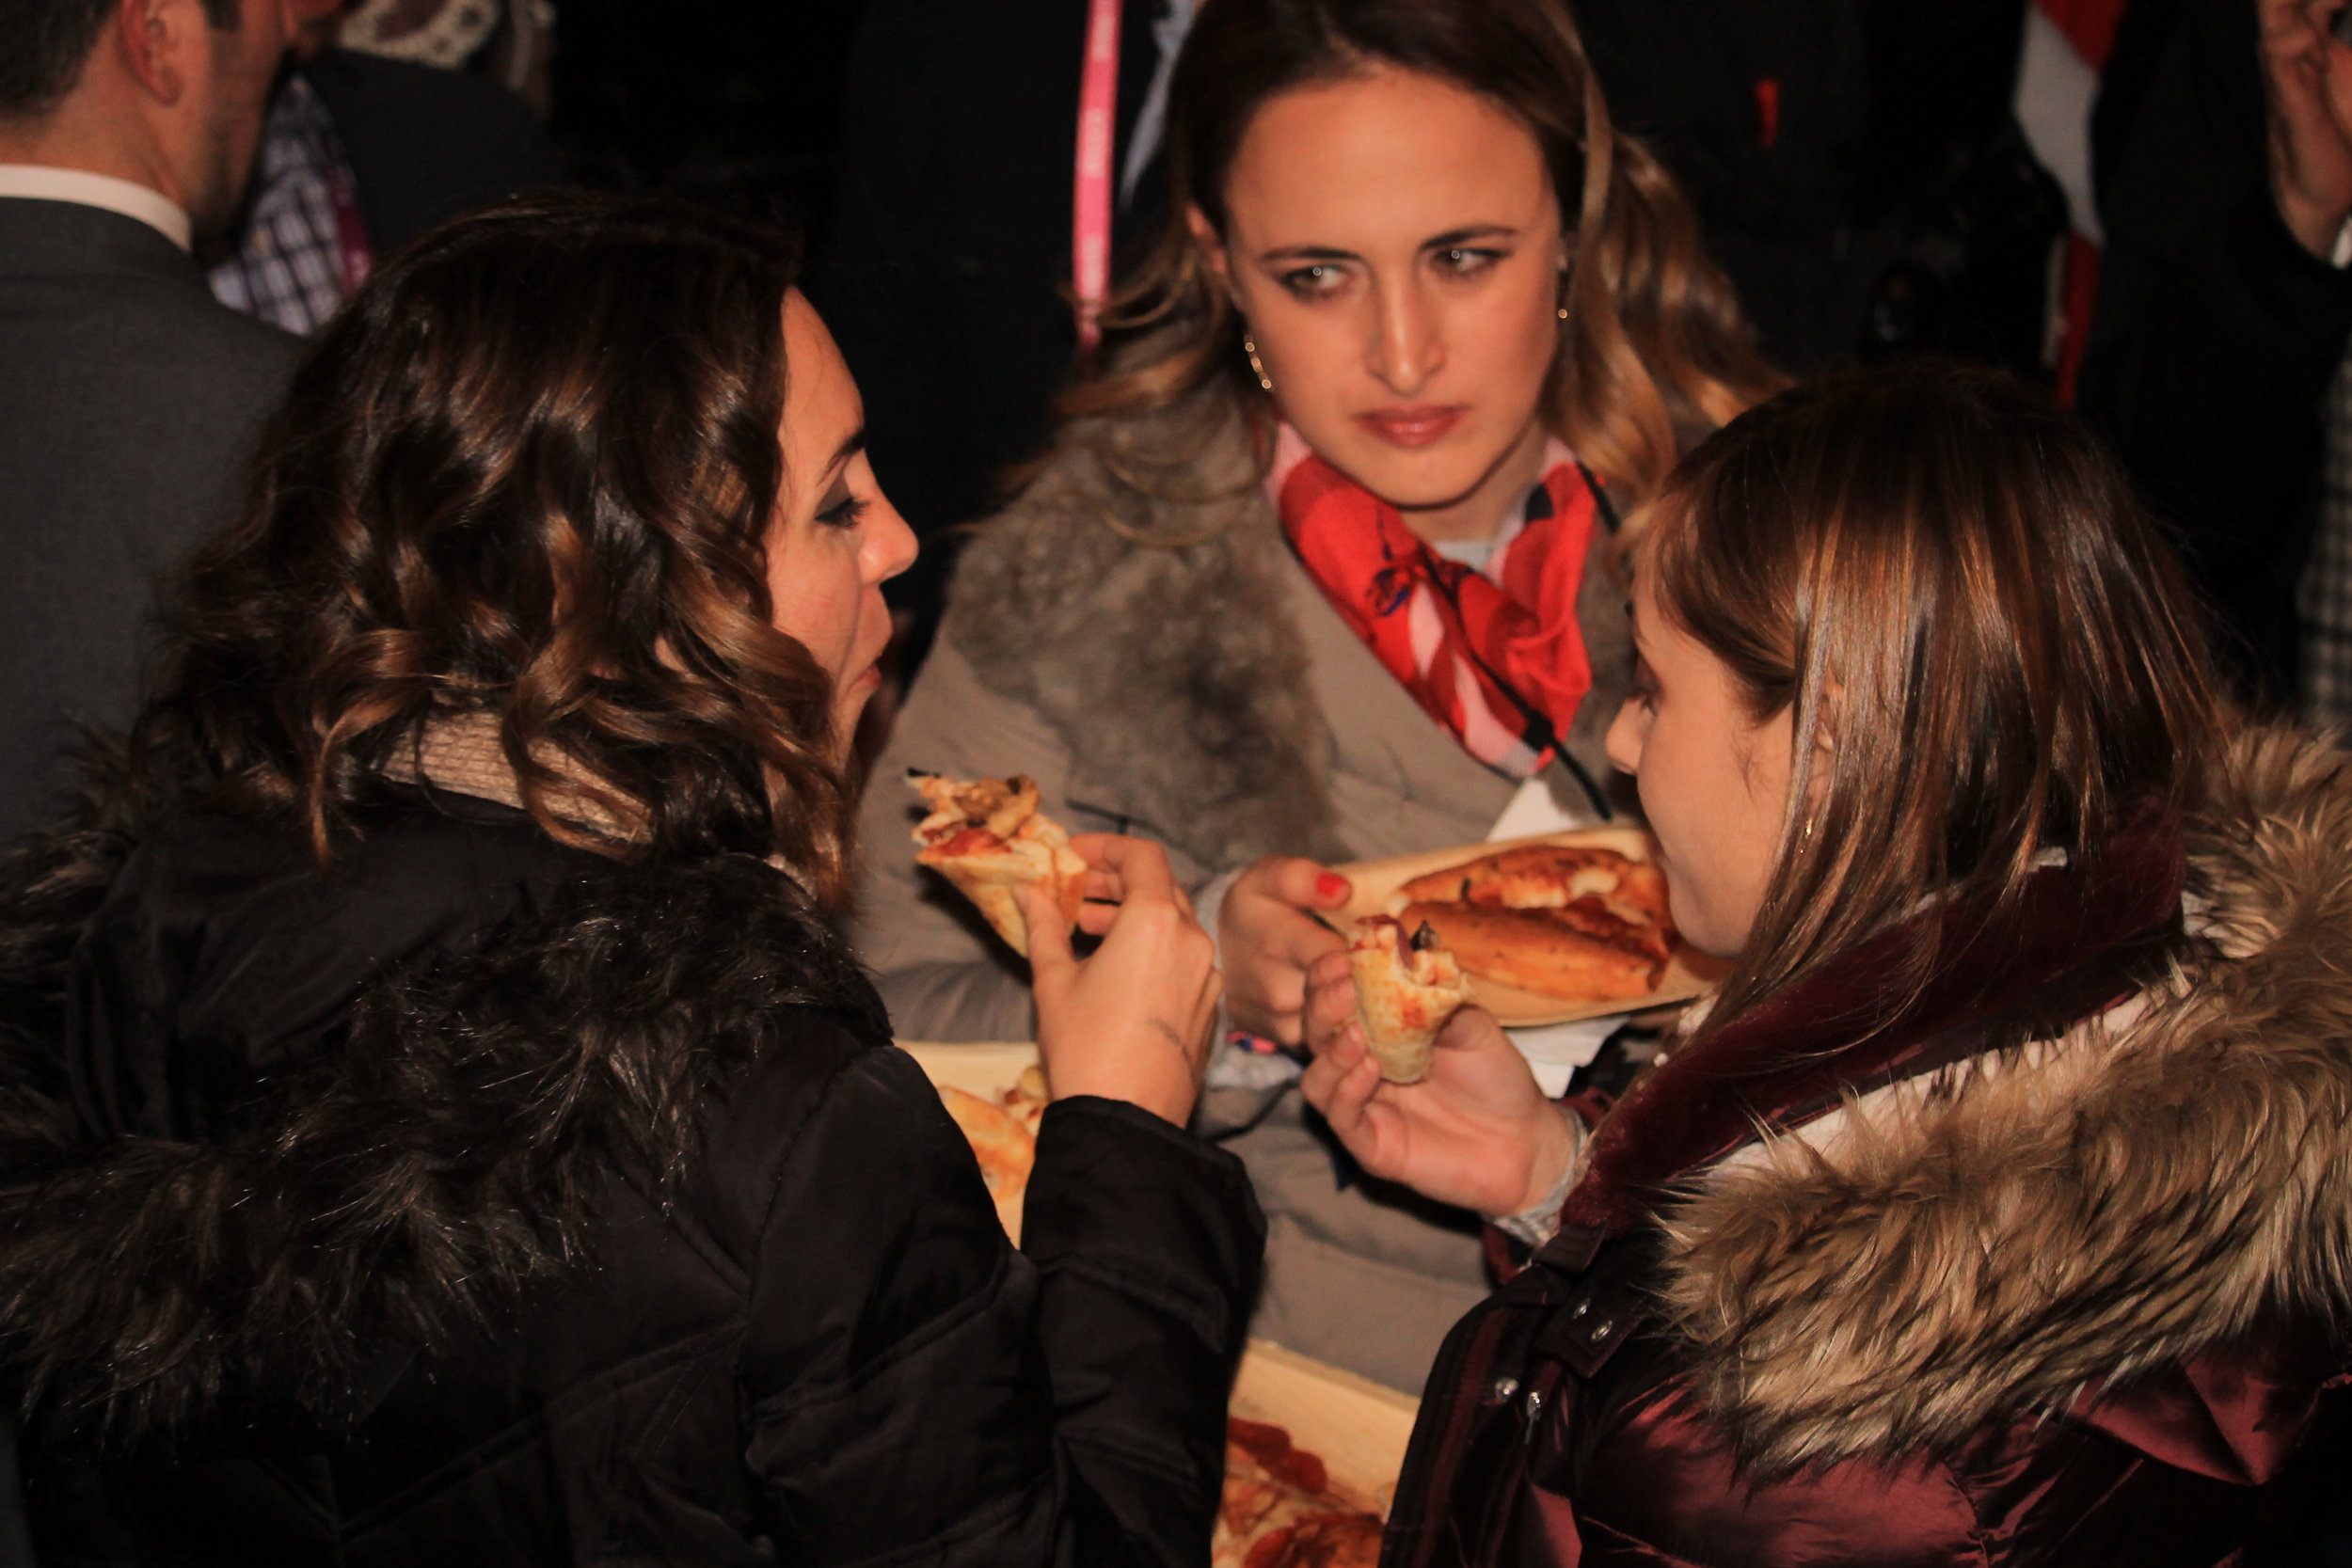 Folks came in from the bitter cold to enjoy a hot slice of pizza.